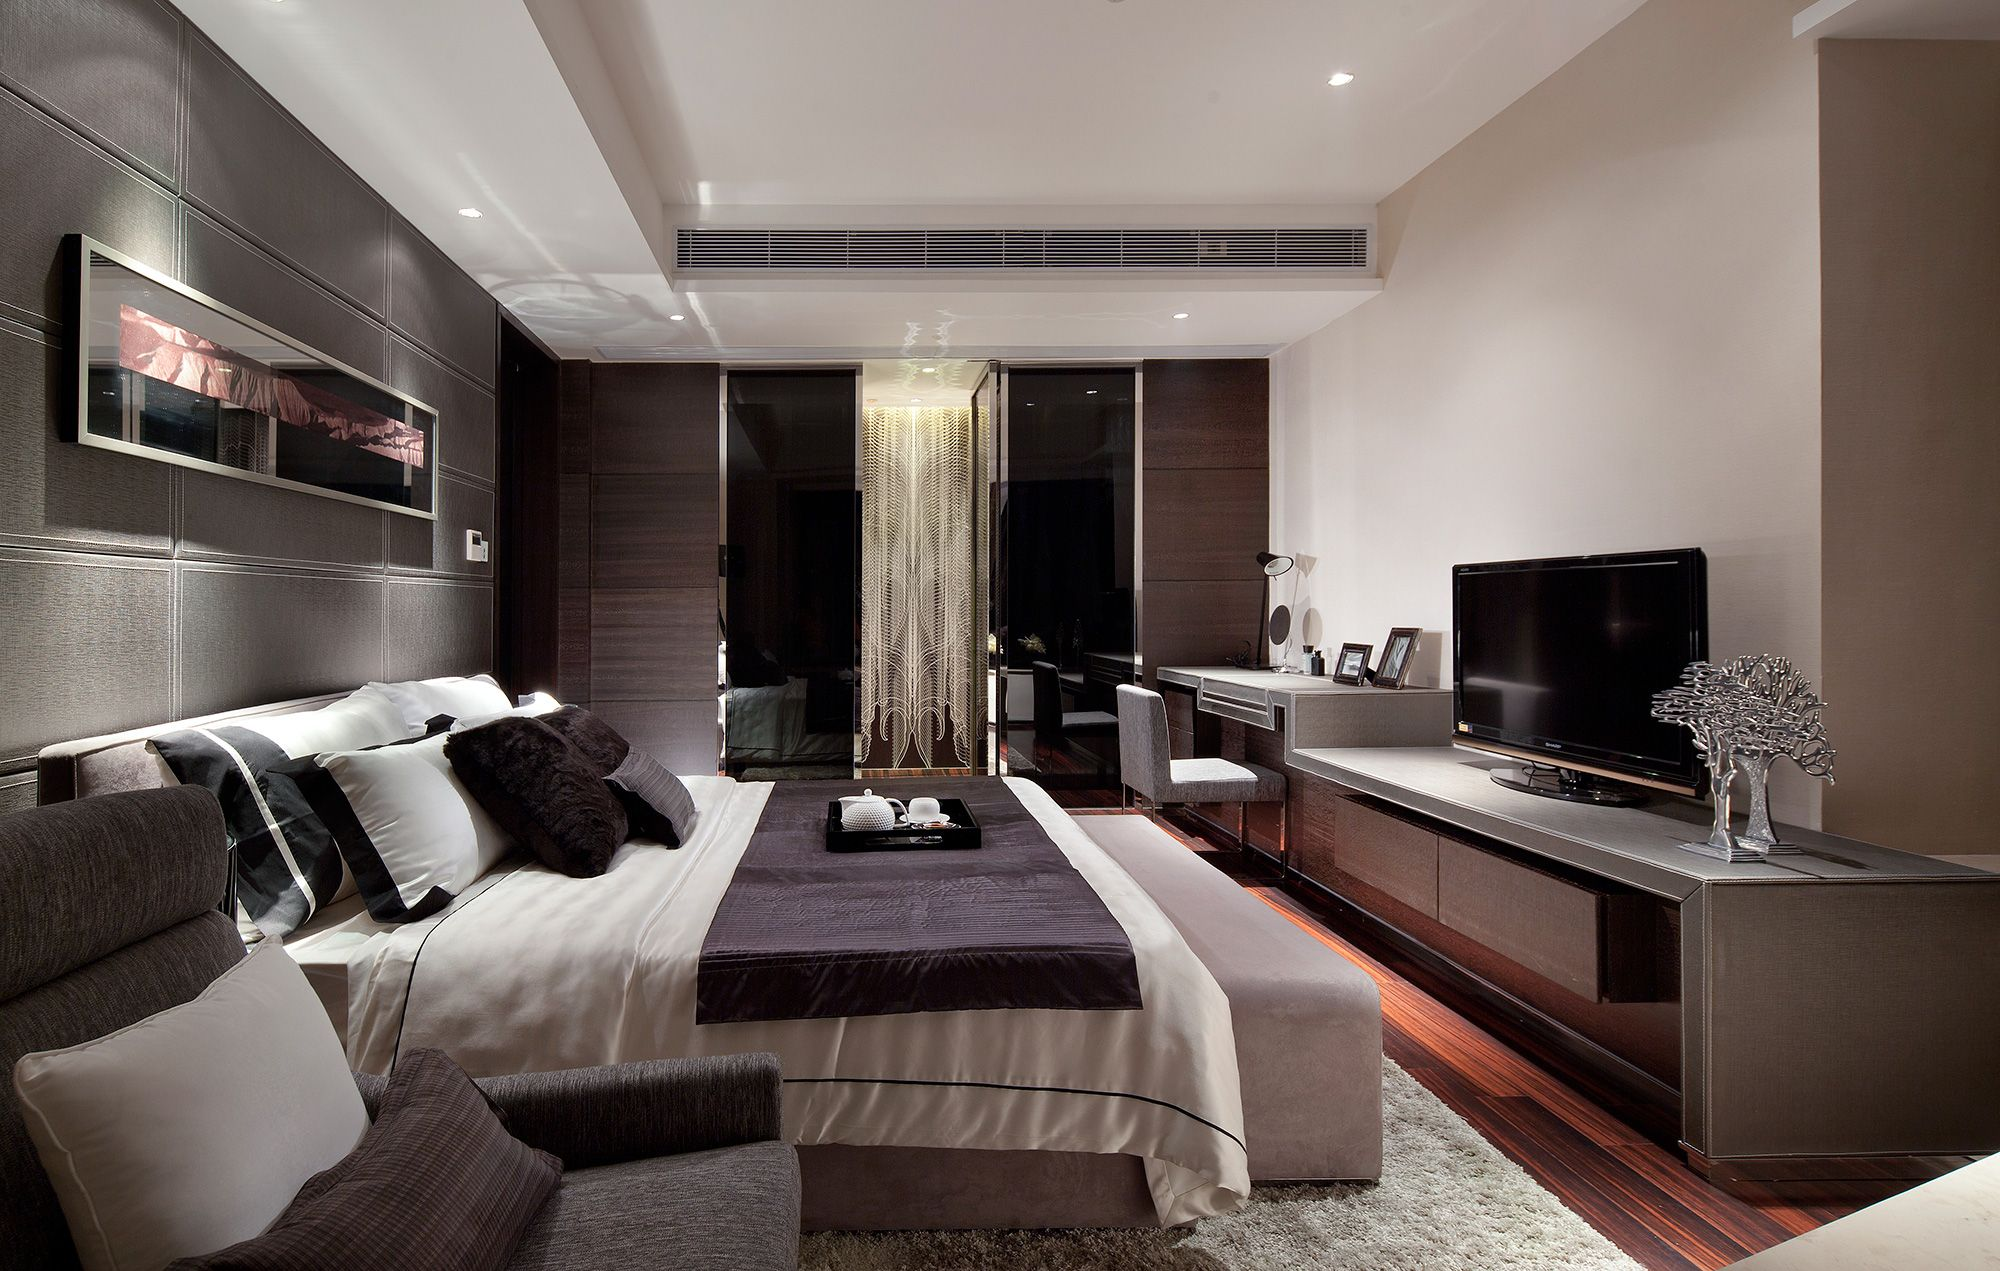 1000+ images about Modern House on Pinterest - ^